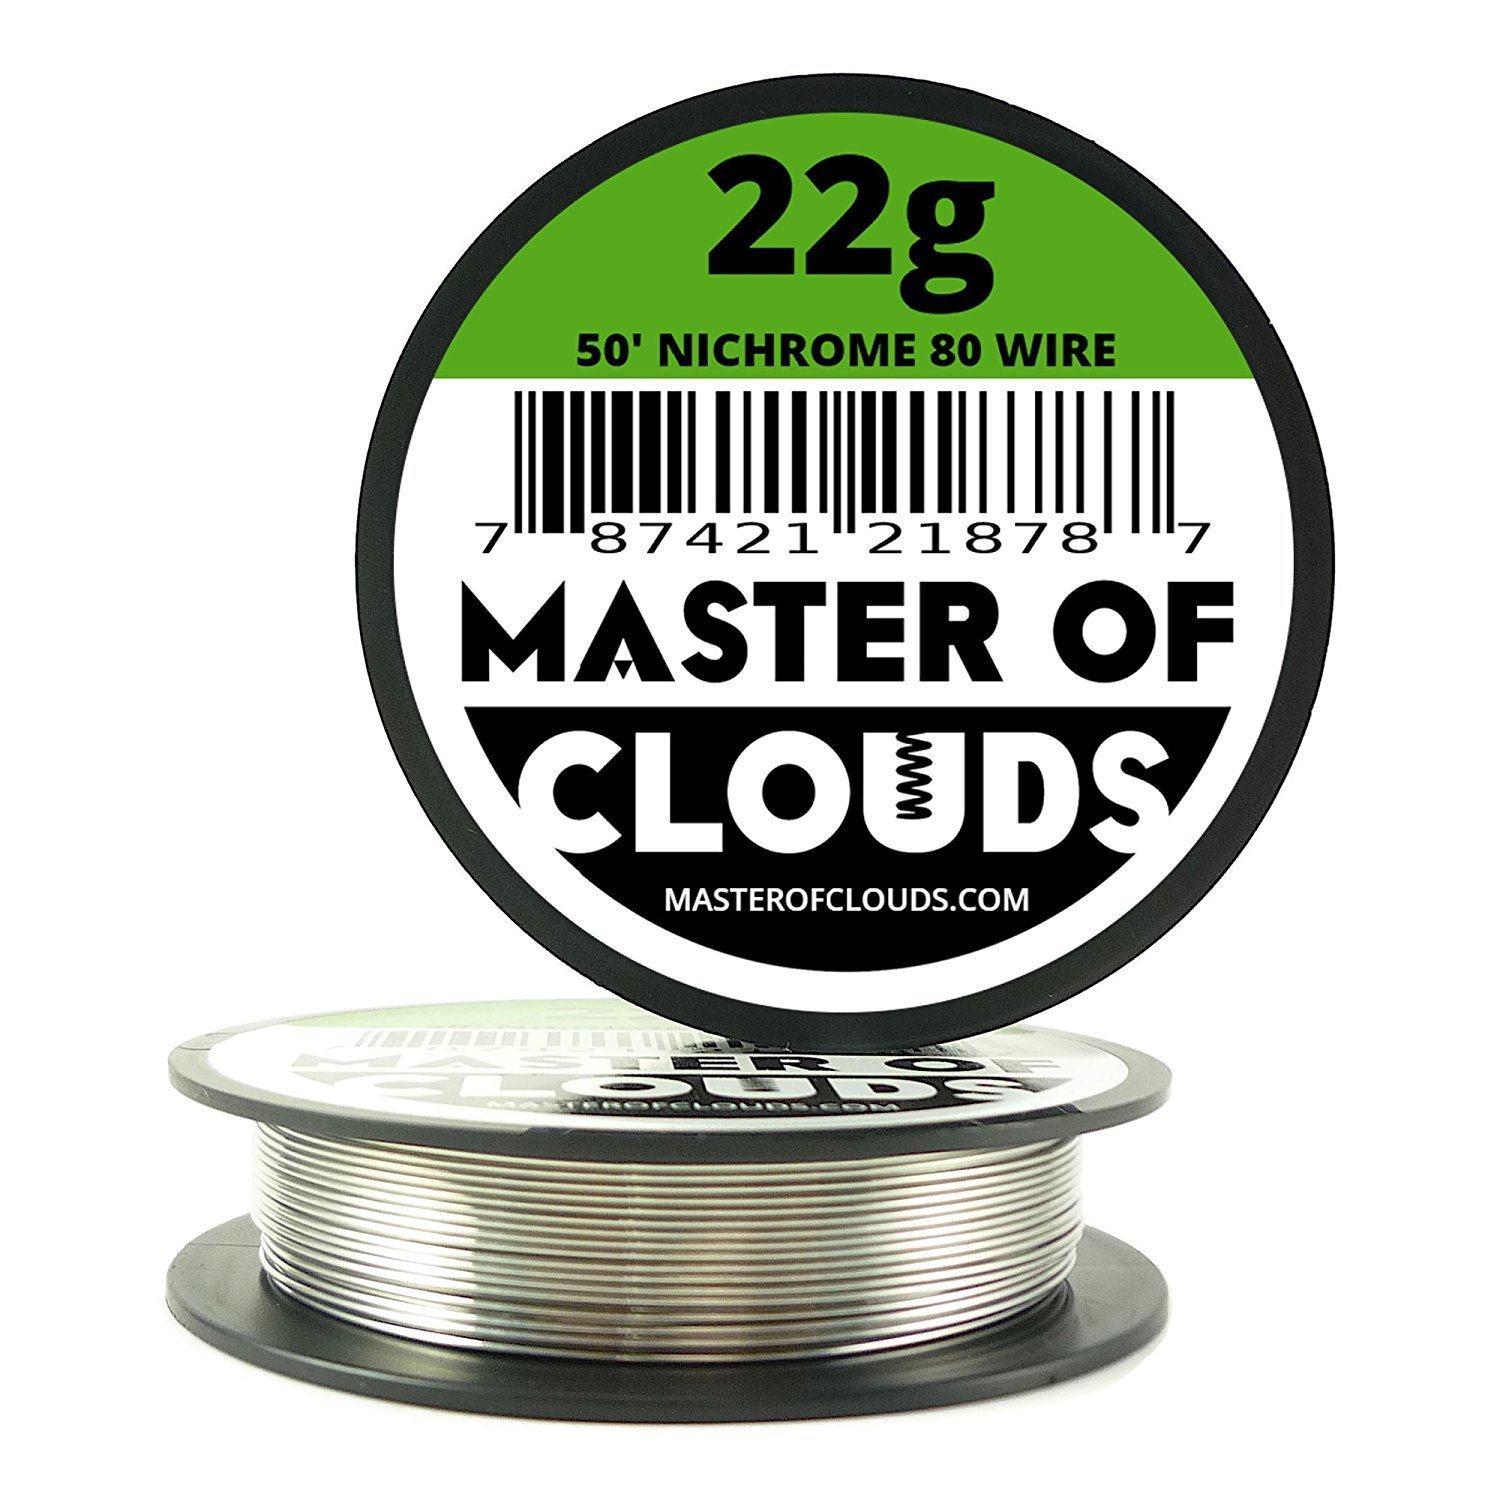 Nichrome 80 - 50 ft 22 Gauge AWG Resistance Wire 0.64mm 22g 50 ...